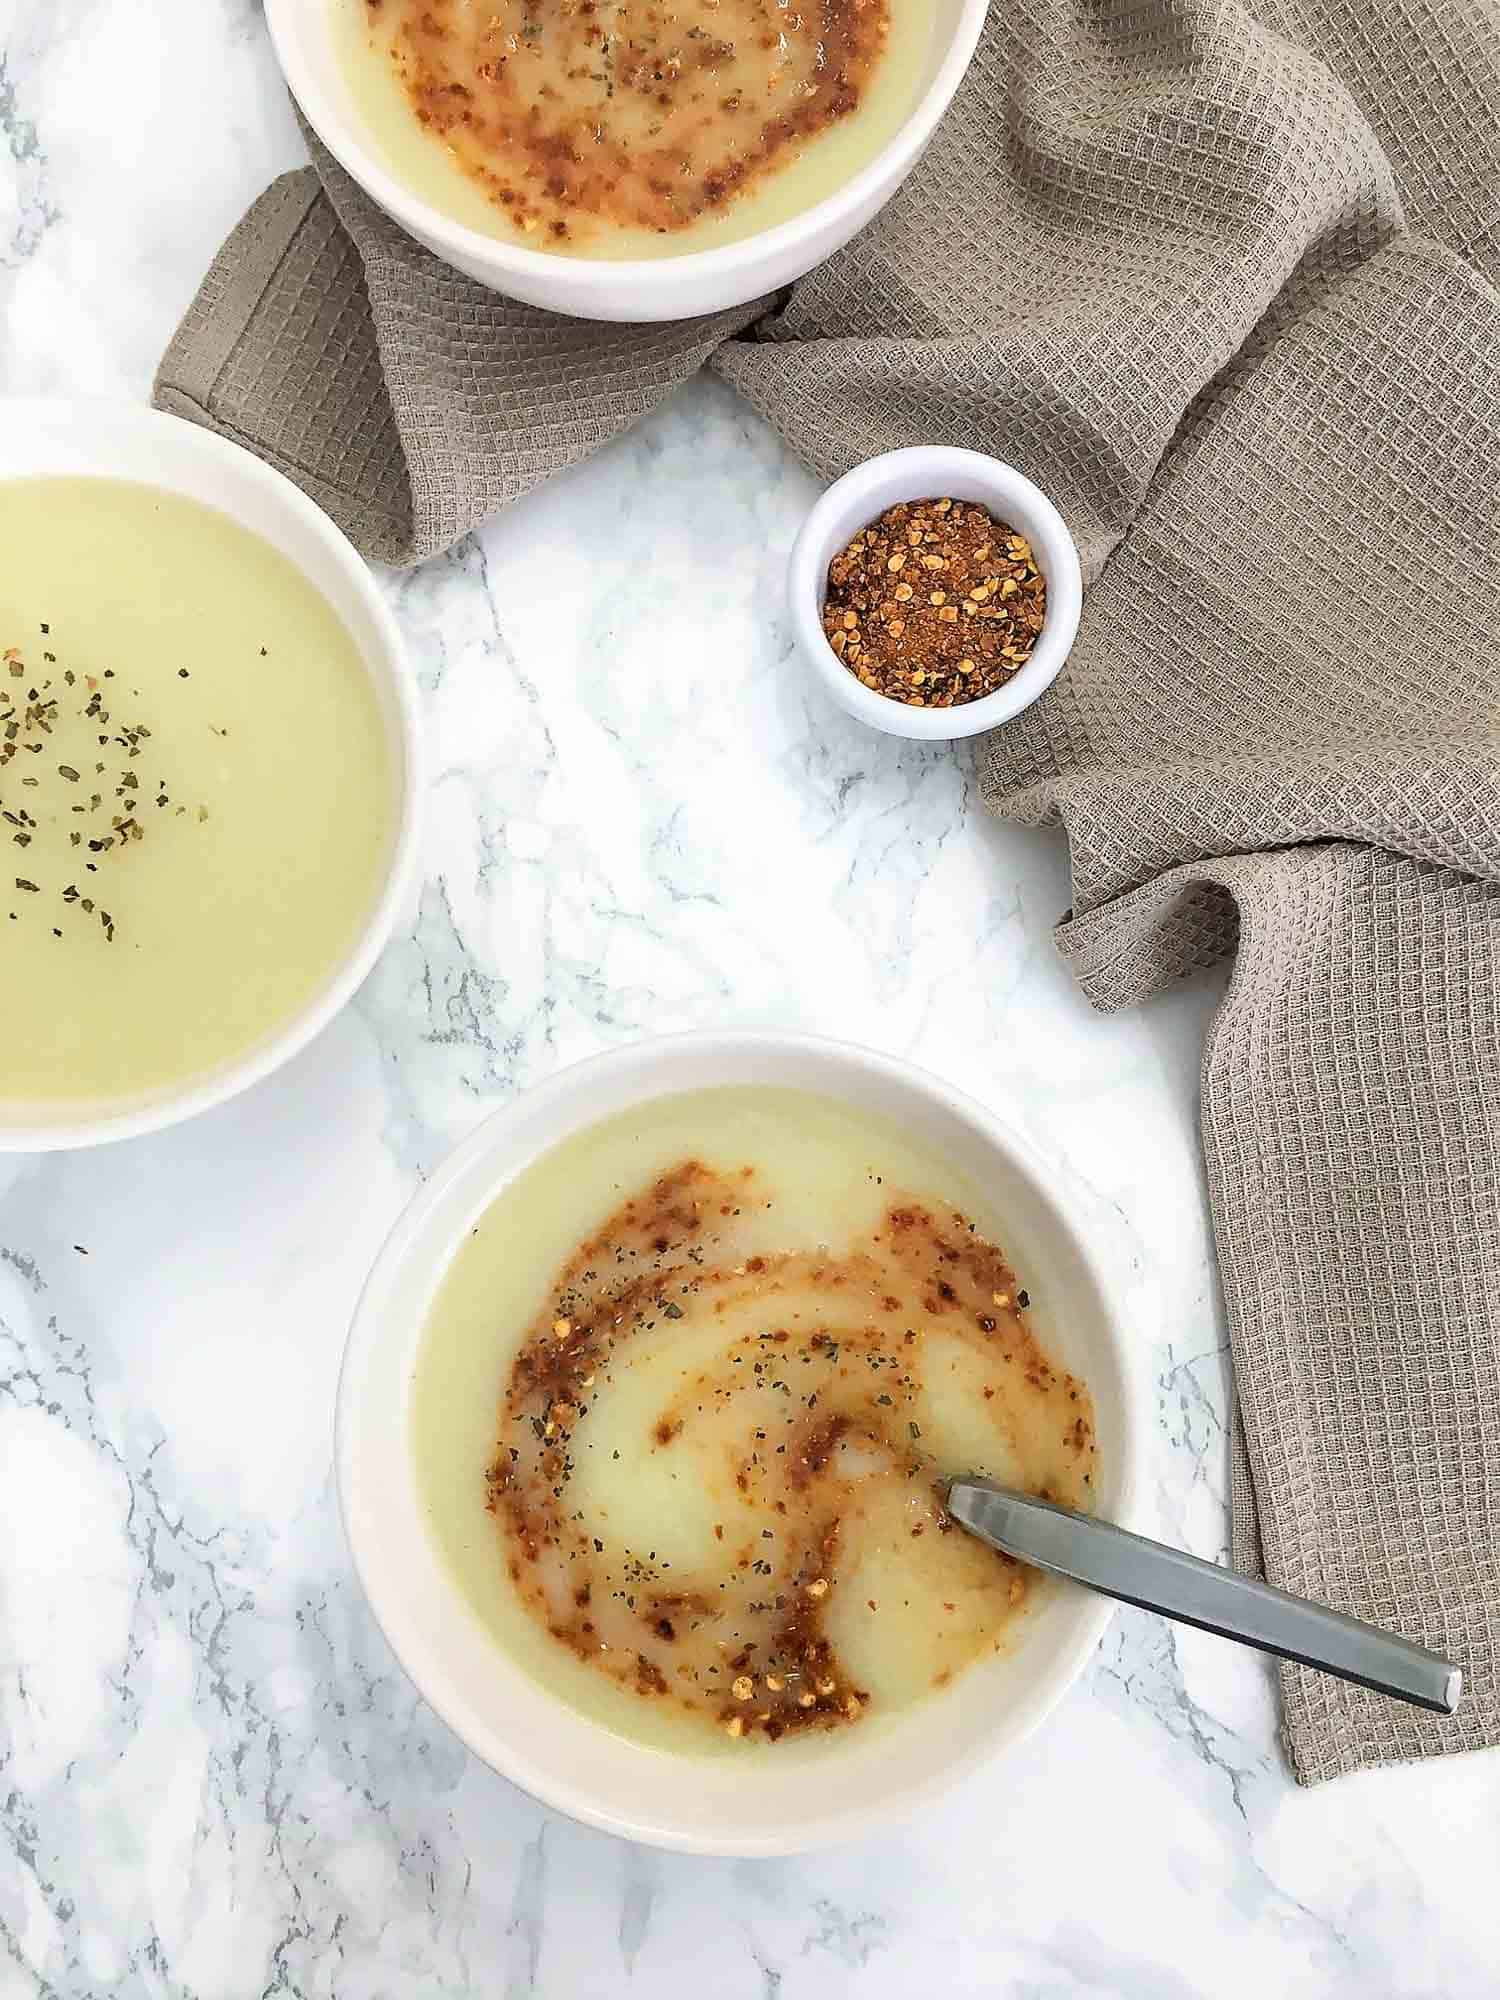 bowl of soup with chili flakes on top